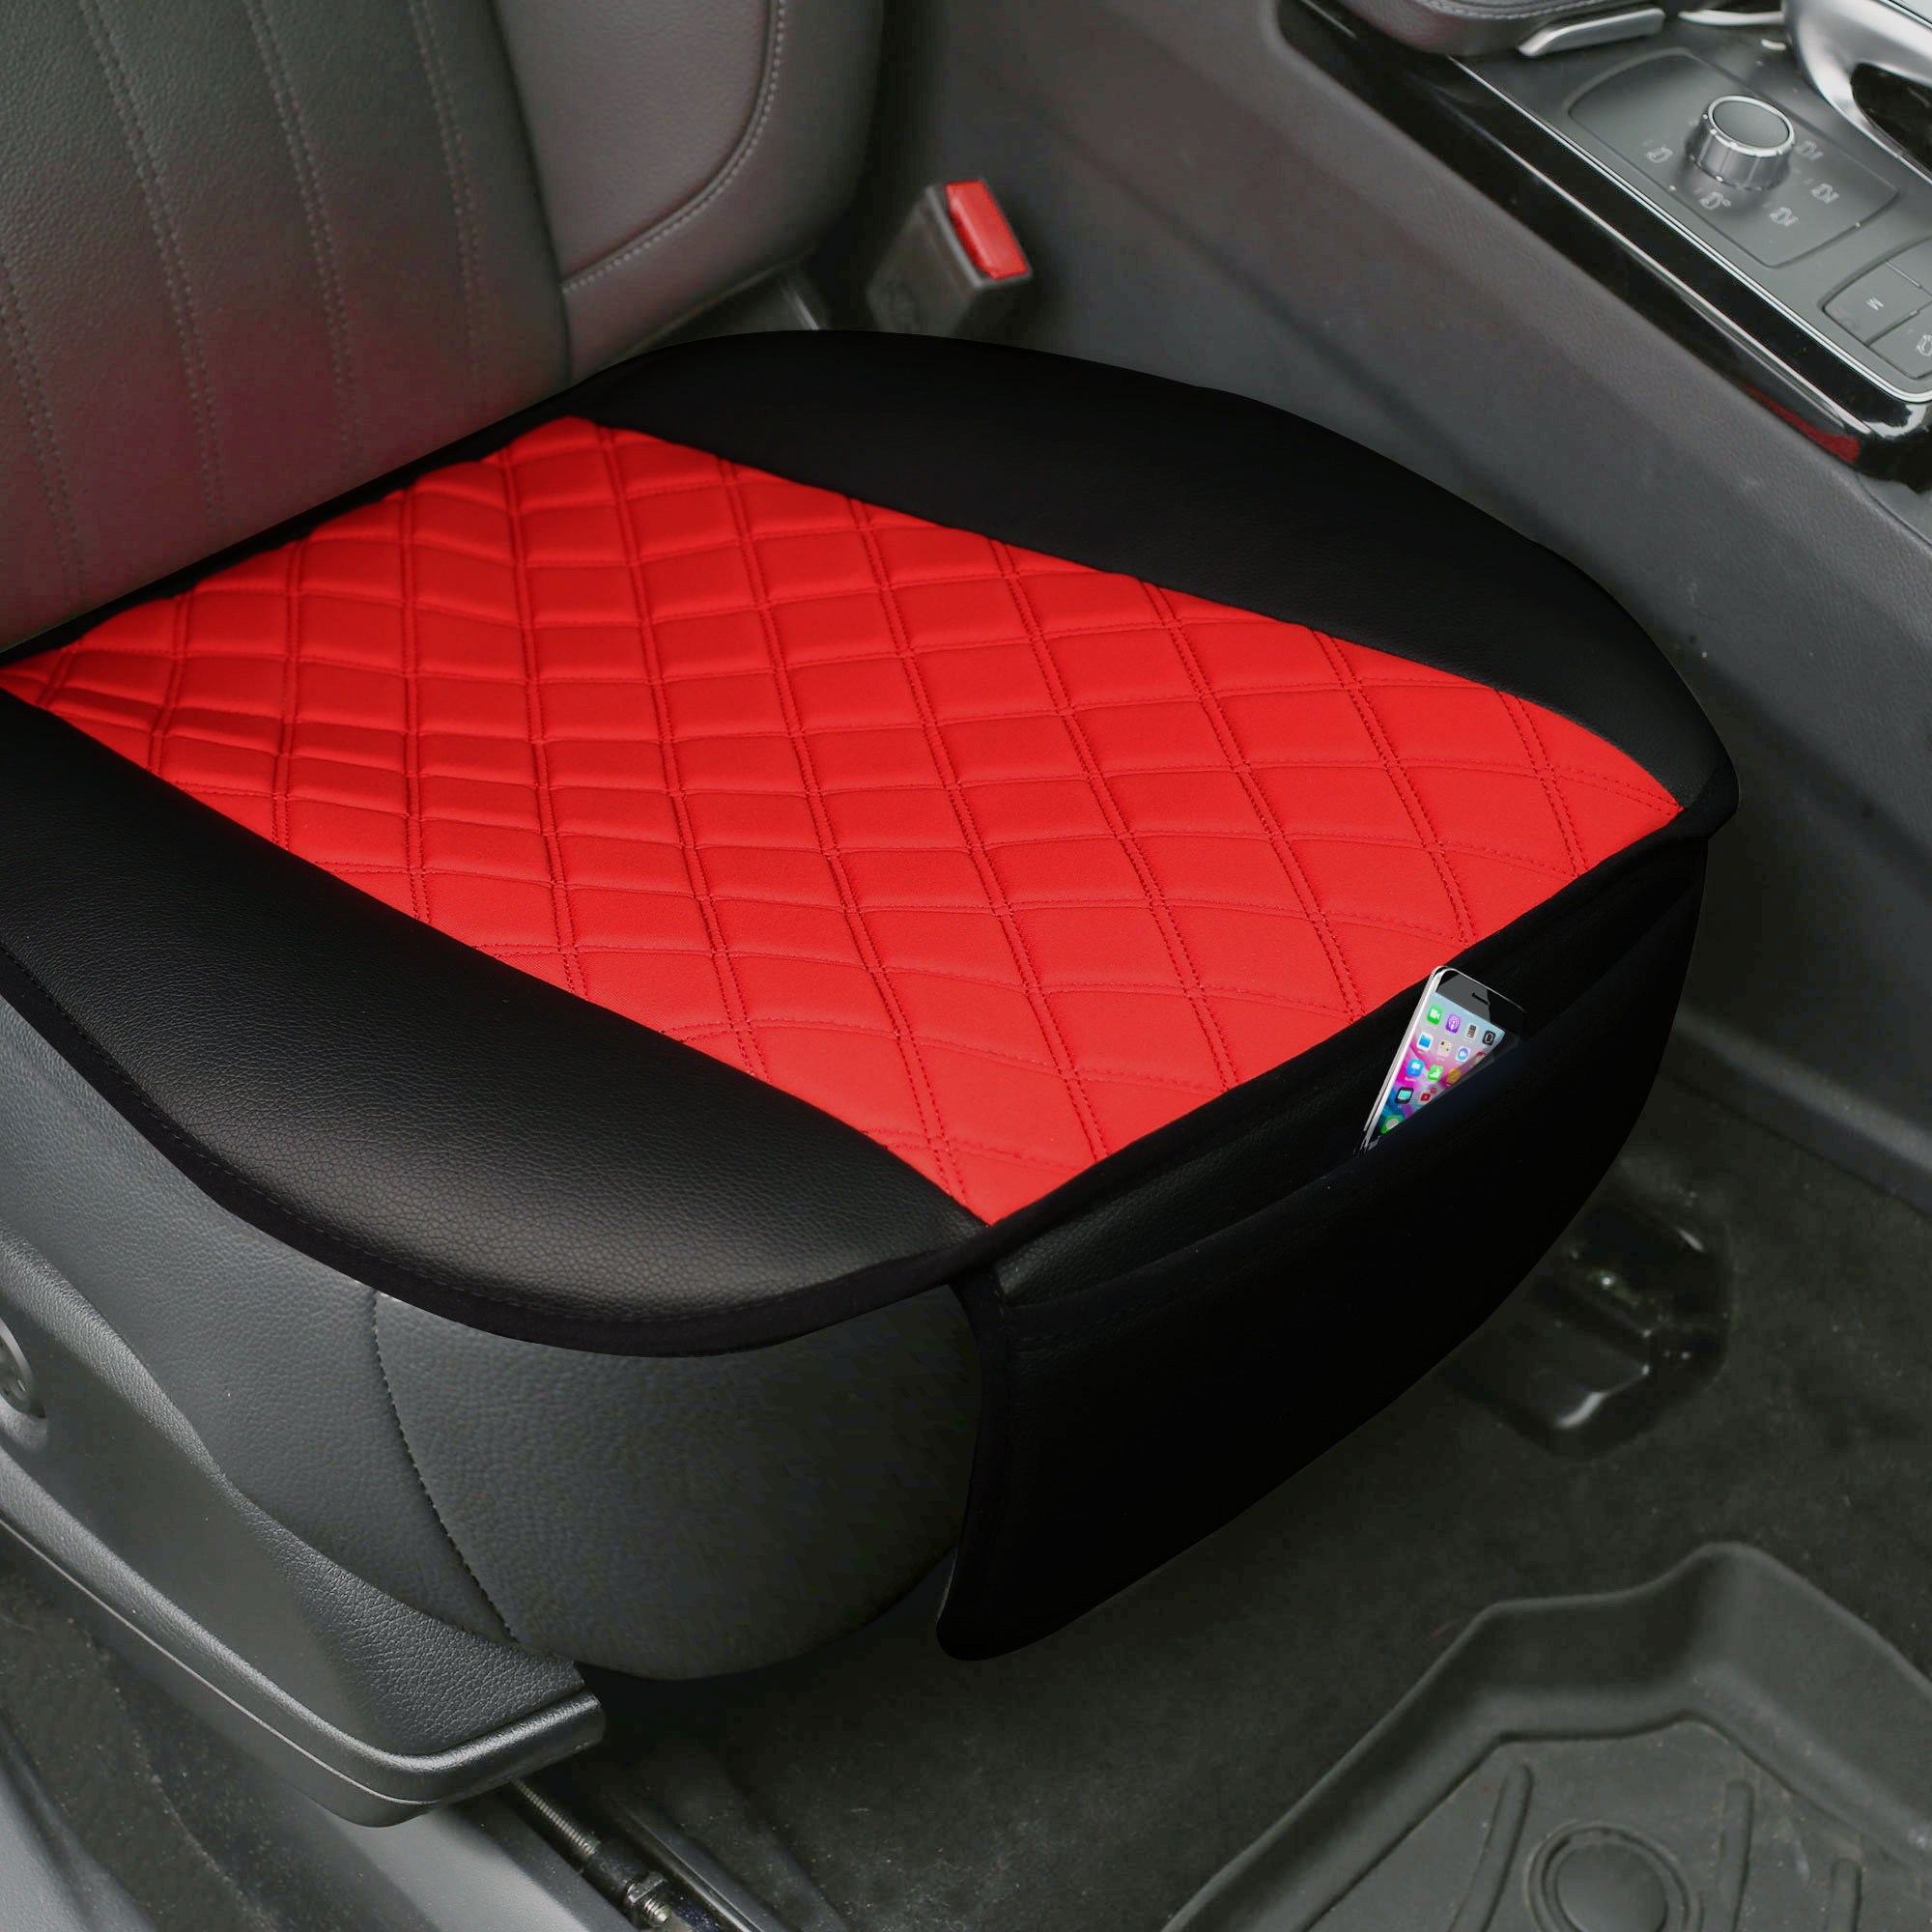 Faux Leather and NeoSupreme Seat Cushion Pad with Front Pocket - Black FB210102RED